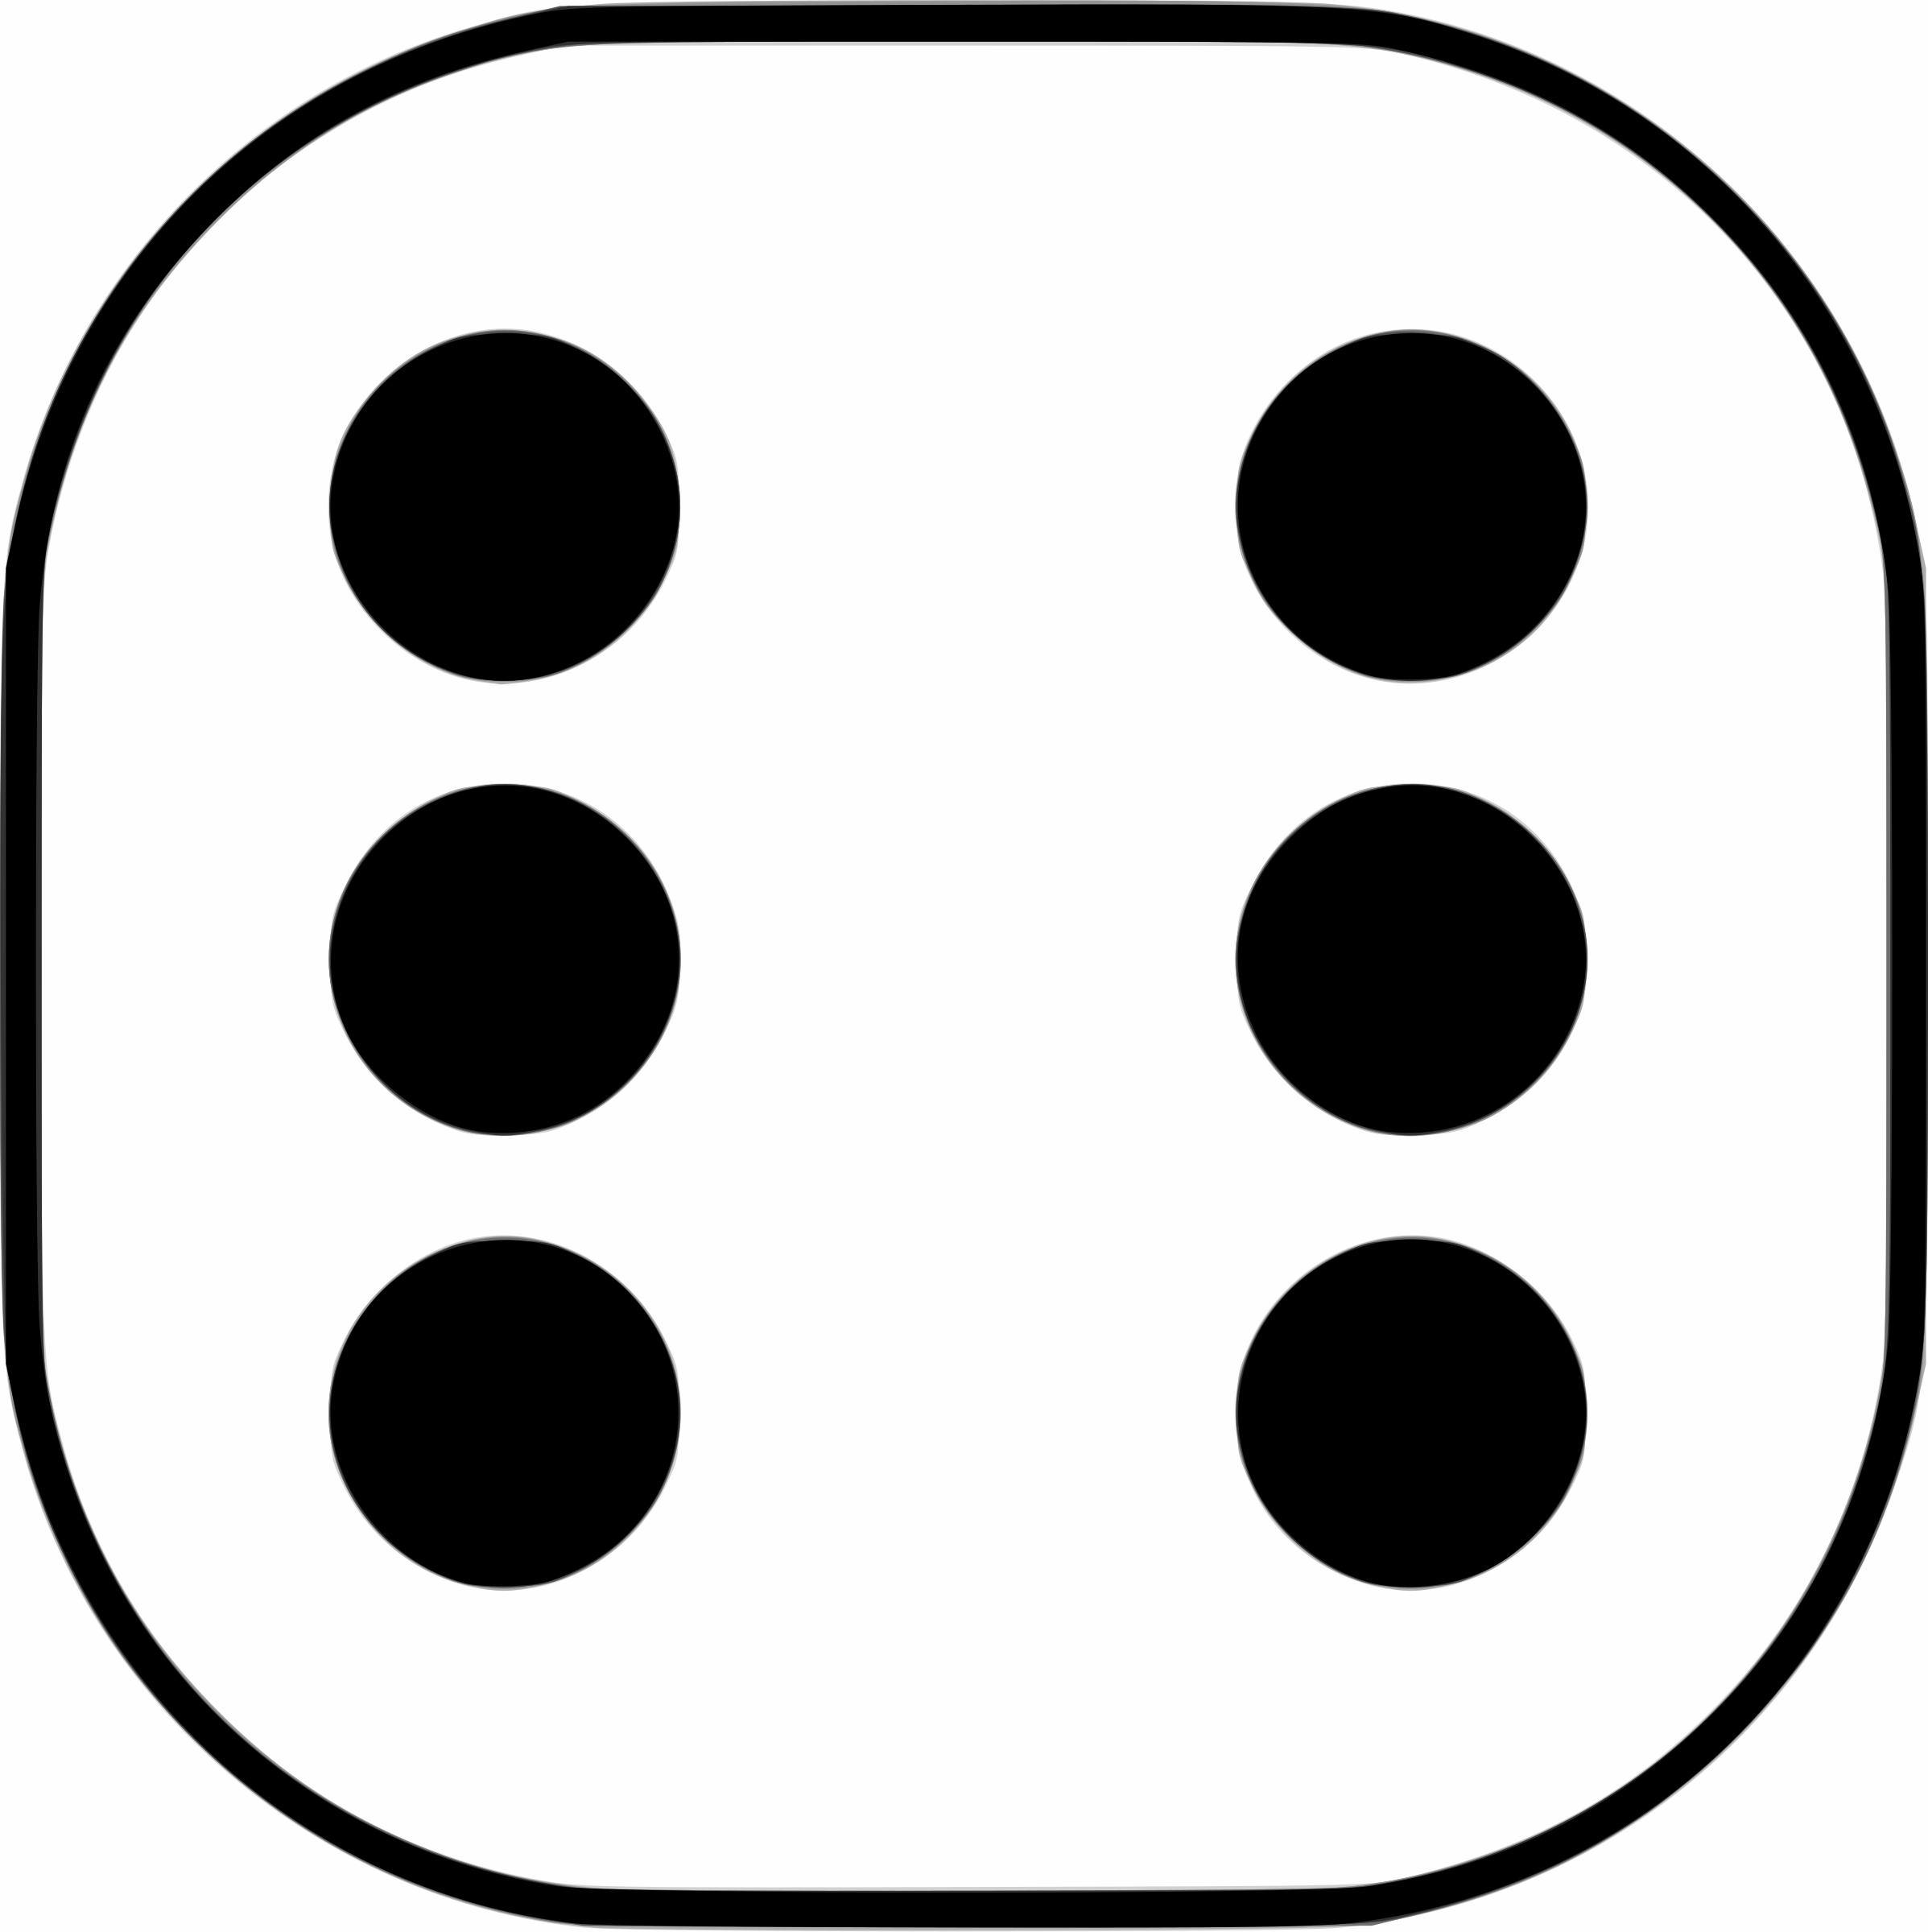 clipartfest log in. 6 dice number clipart